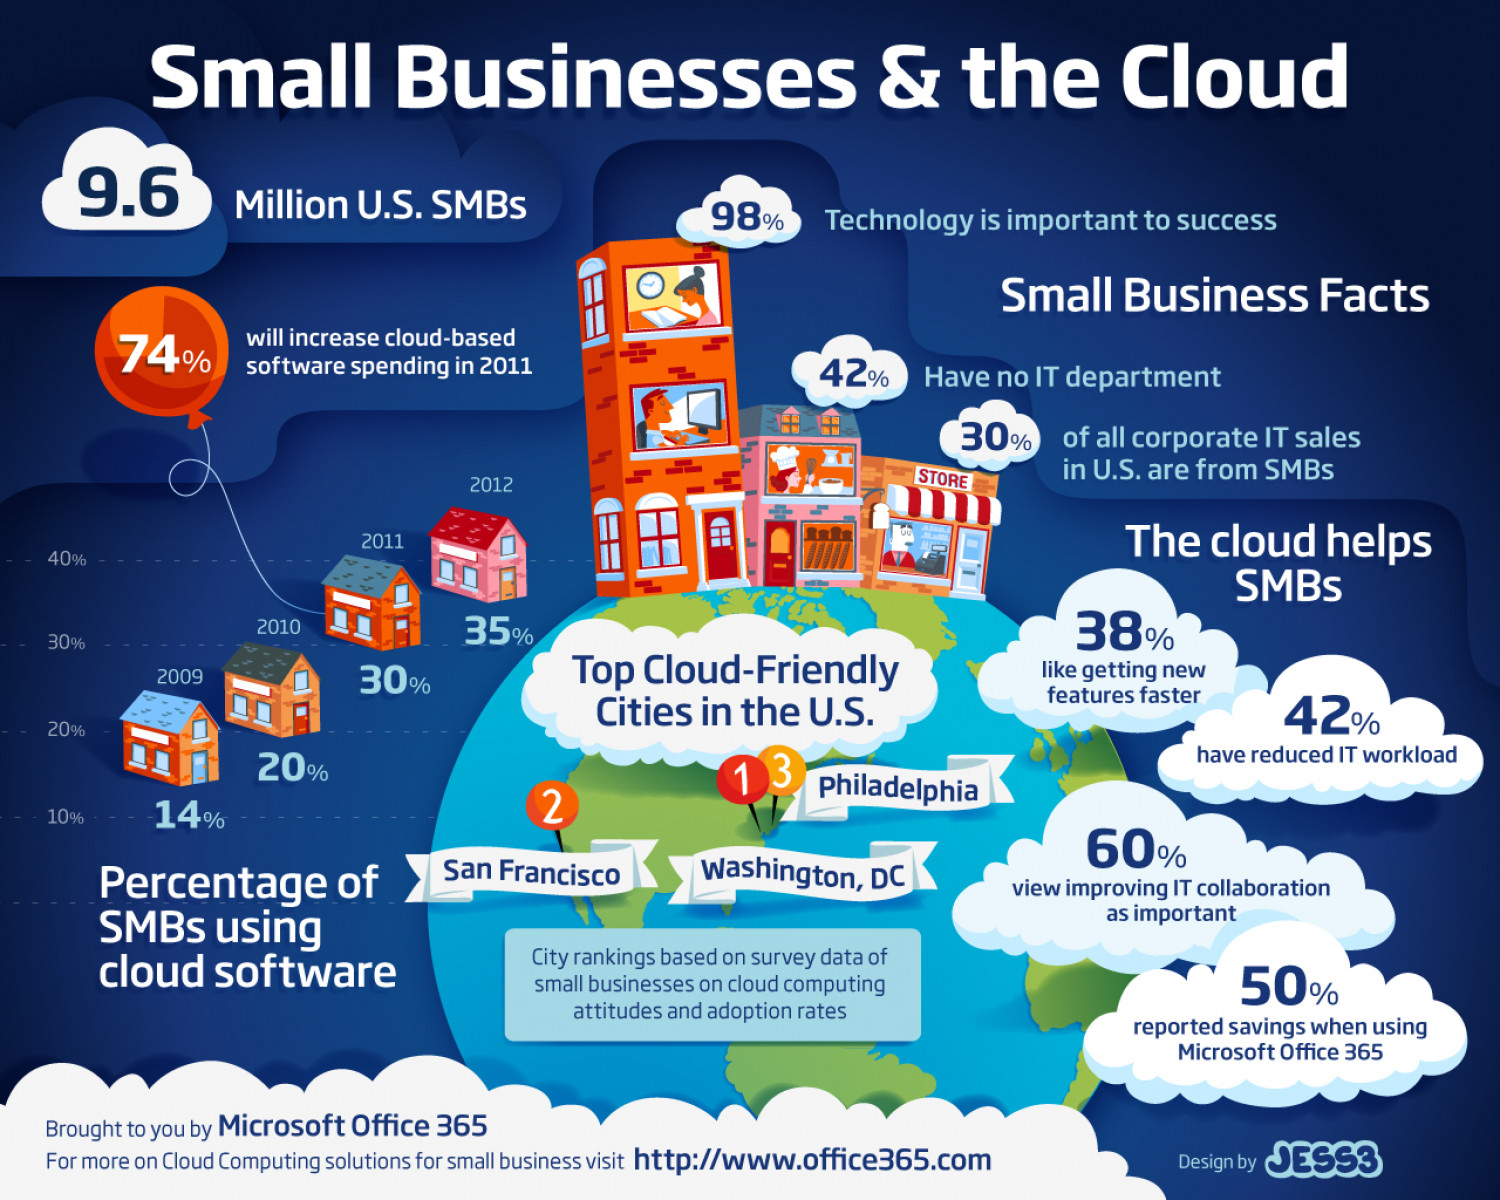 Small Business & The Cloud Infographic